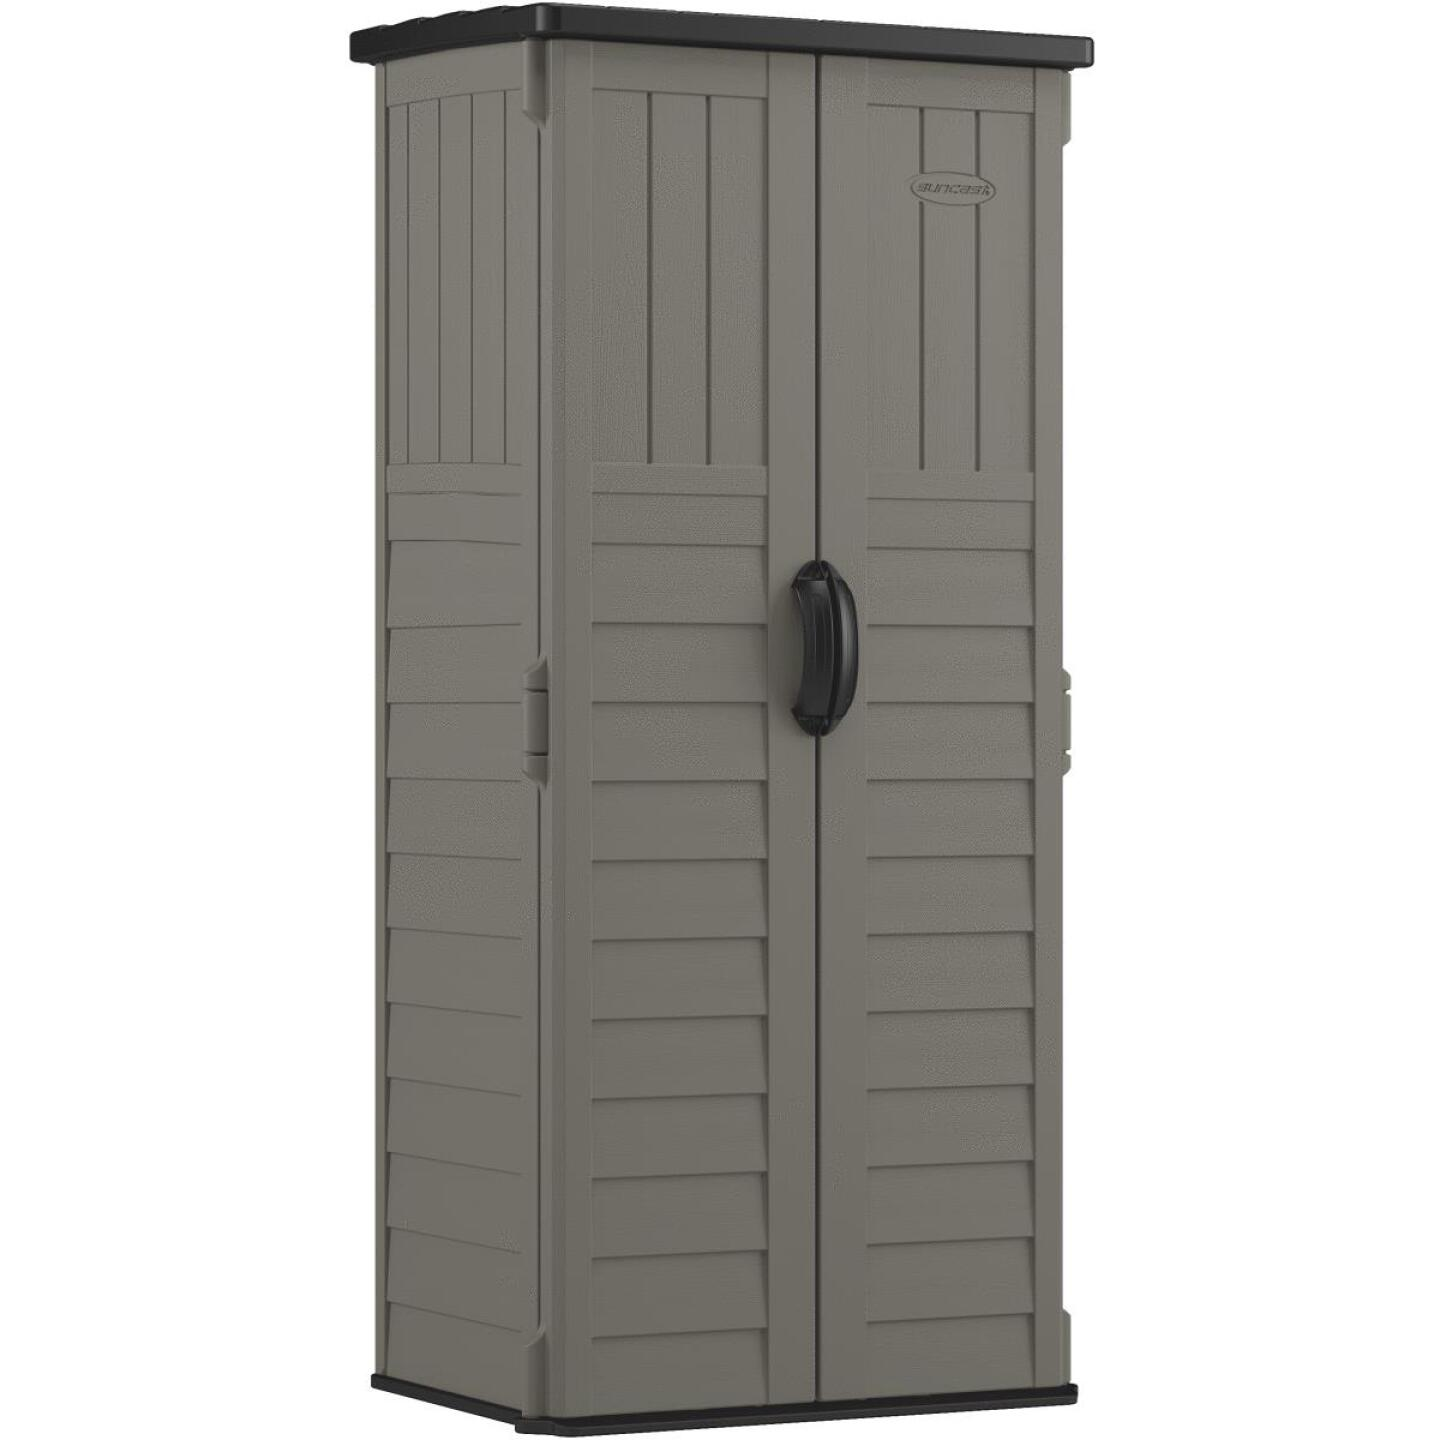 Suncast 22 Cu. Ft. Vertical Storage Shed Image 1